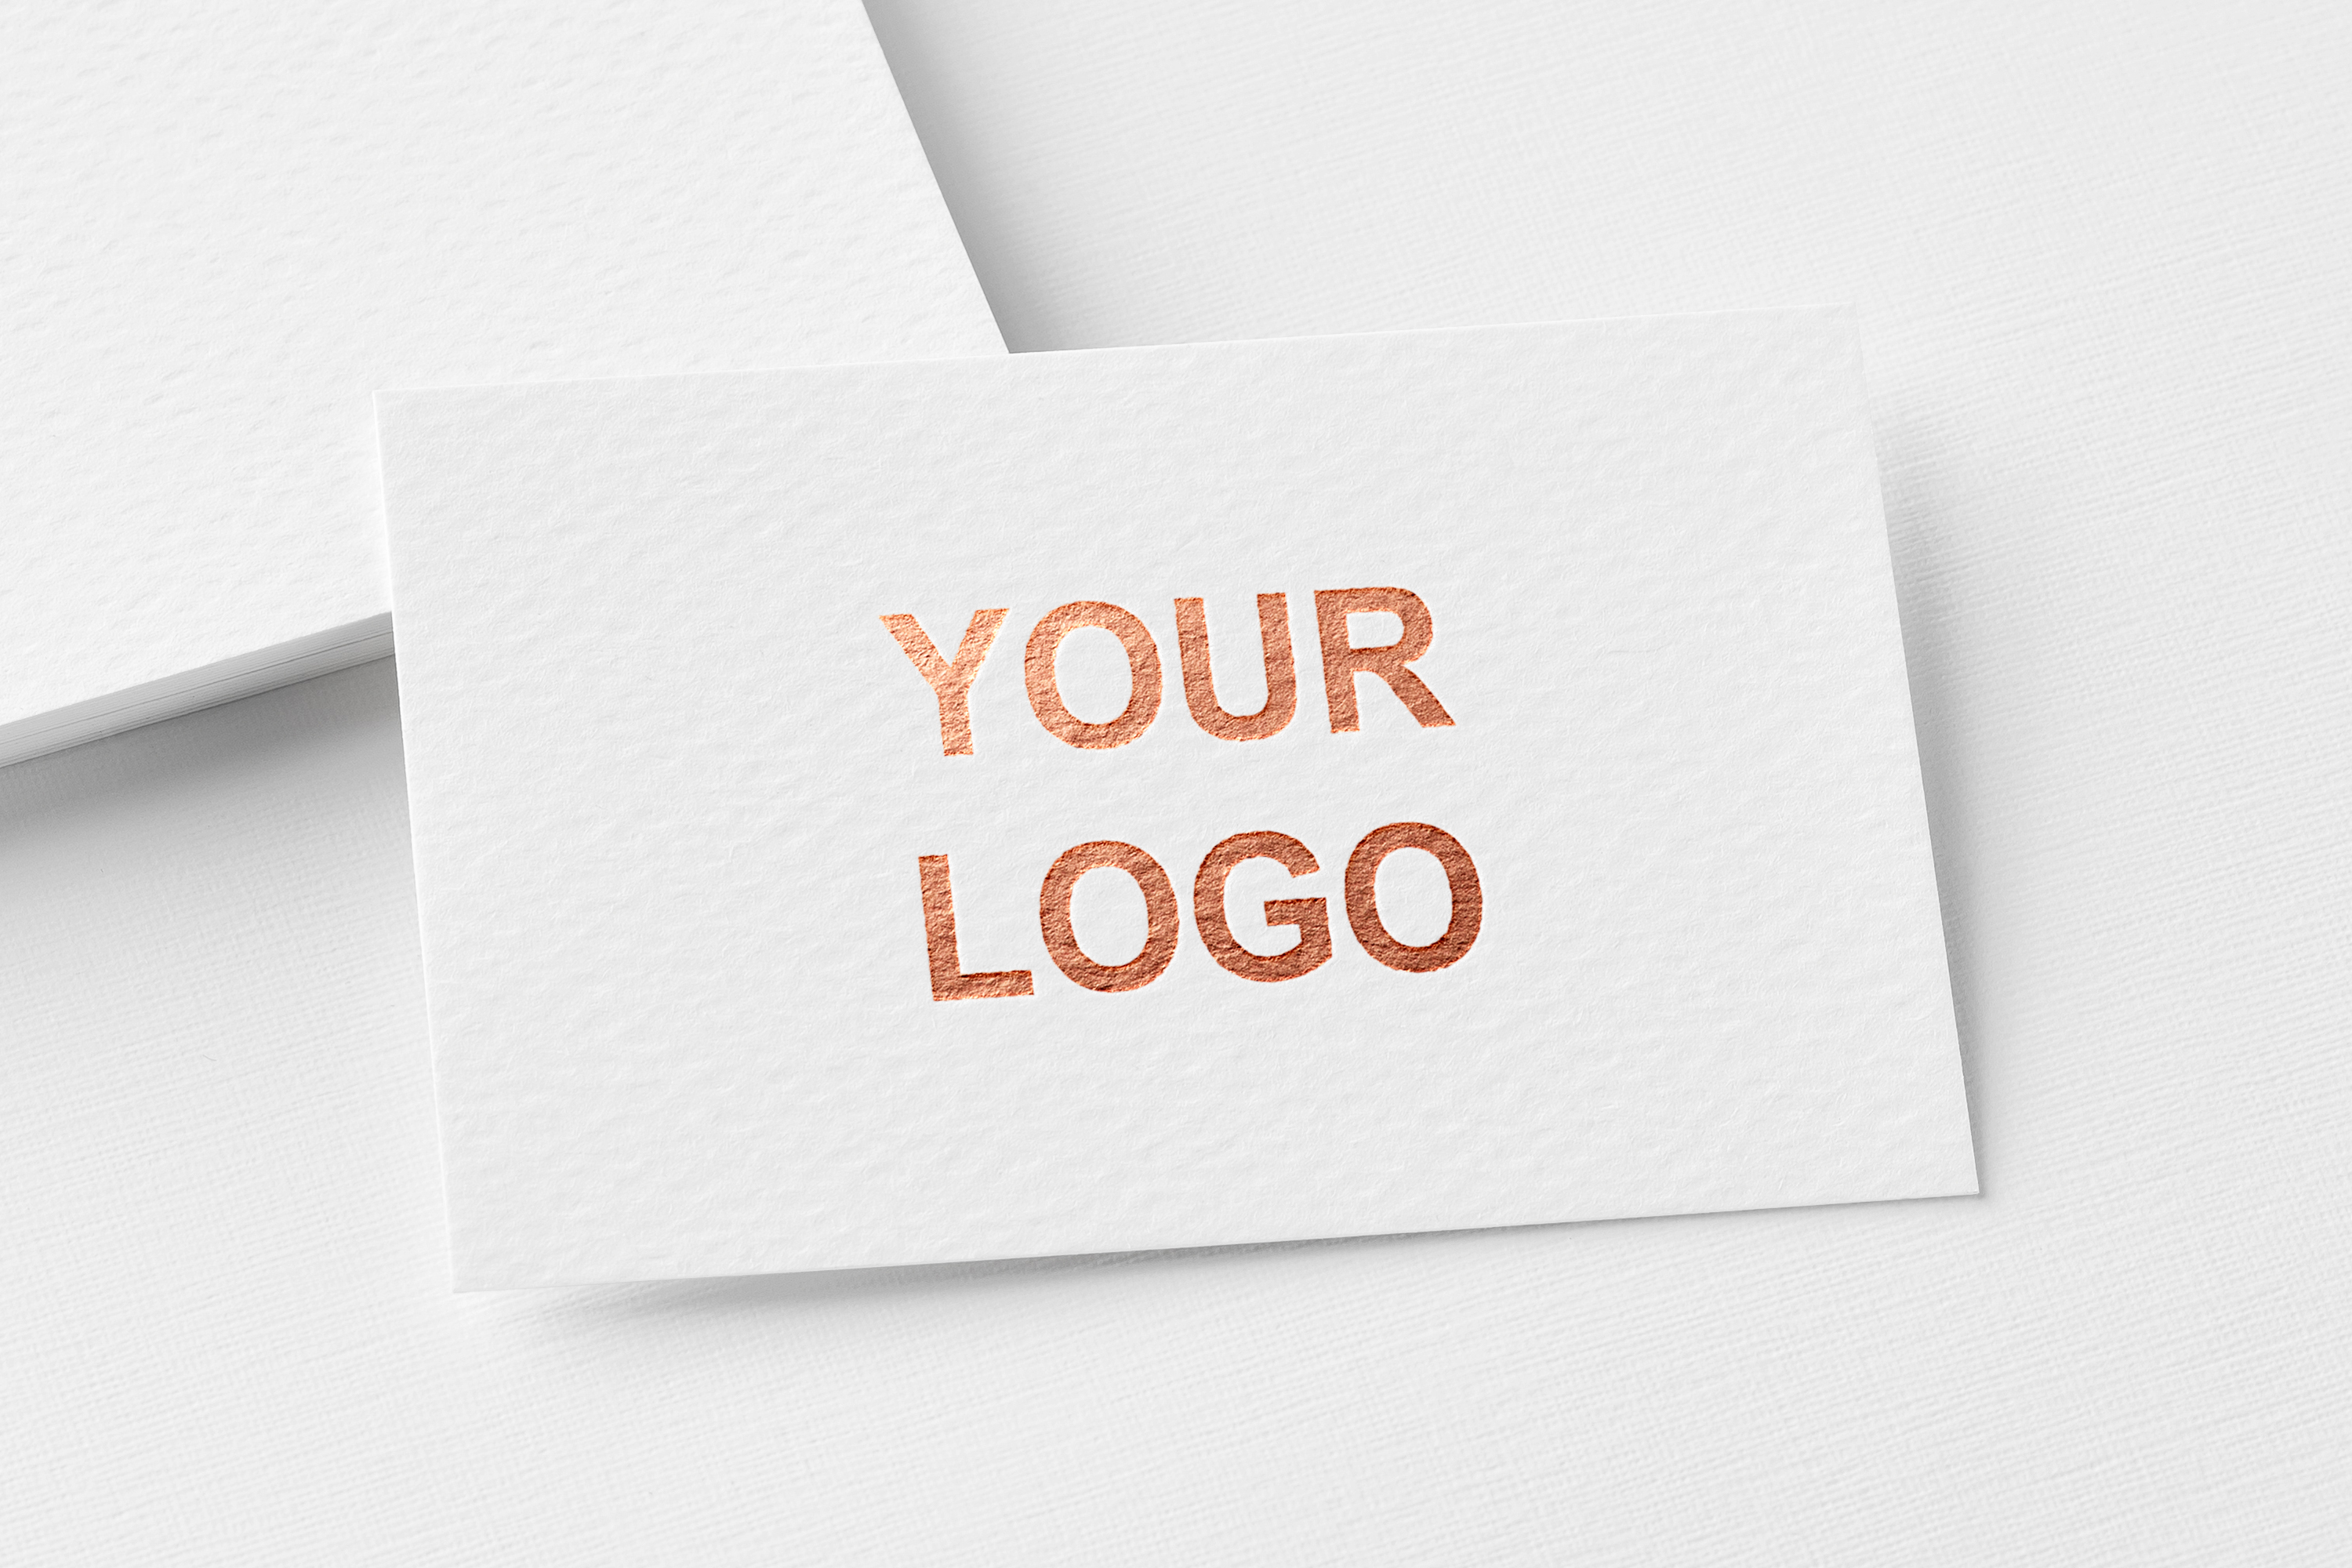 Turn Your Logos into 3D mockups On Wood,Leather or 3D glass office Wall background